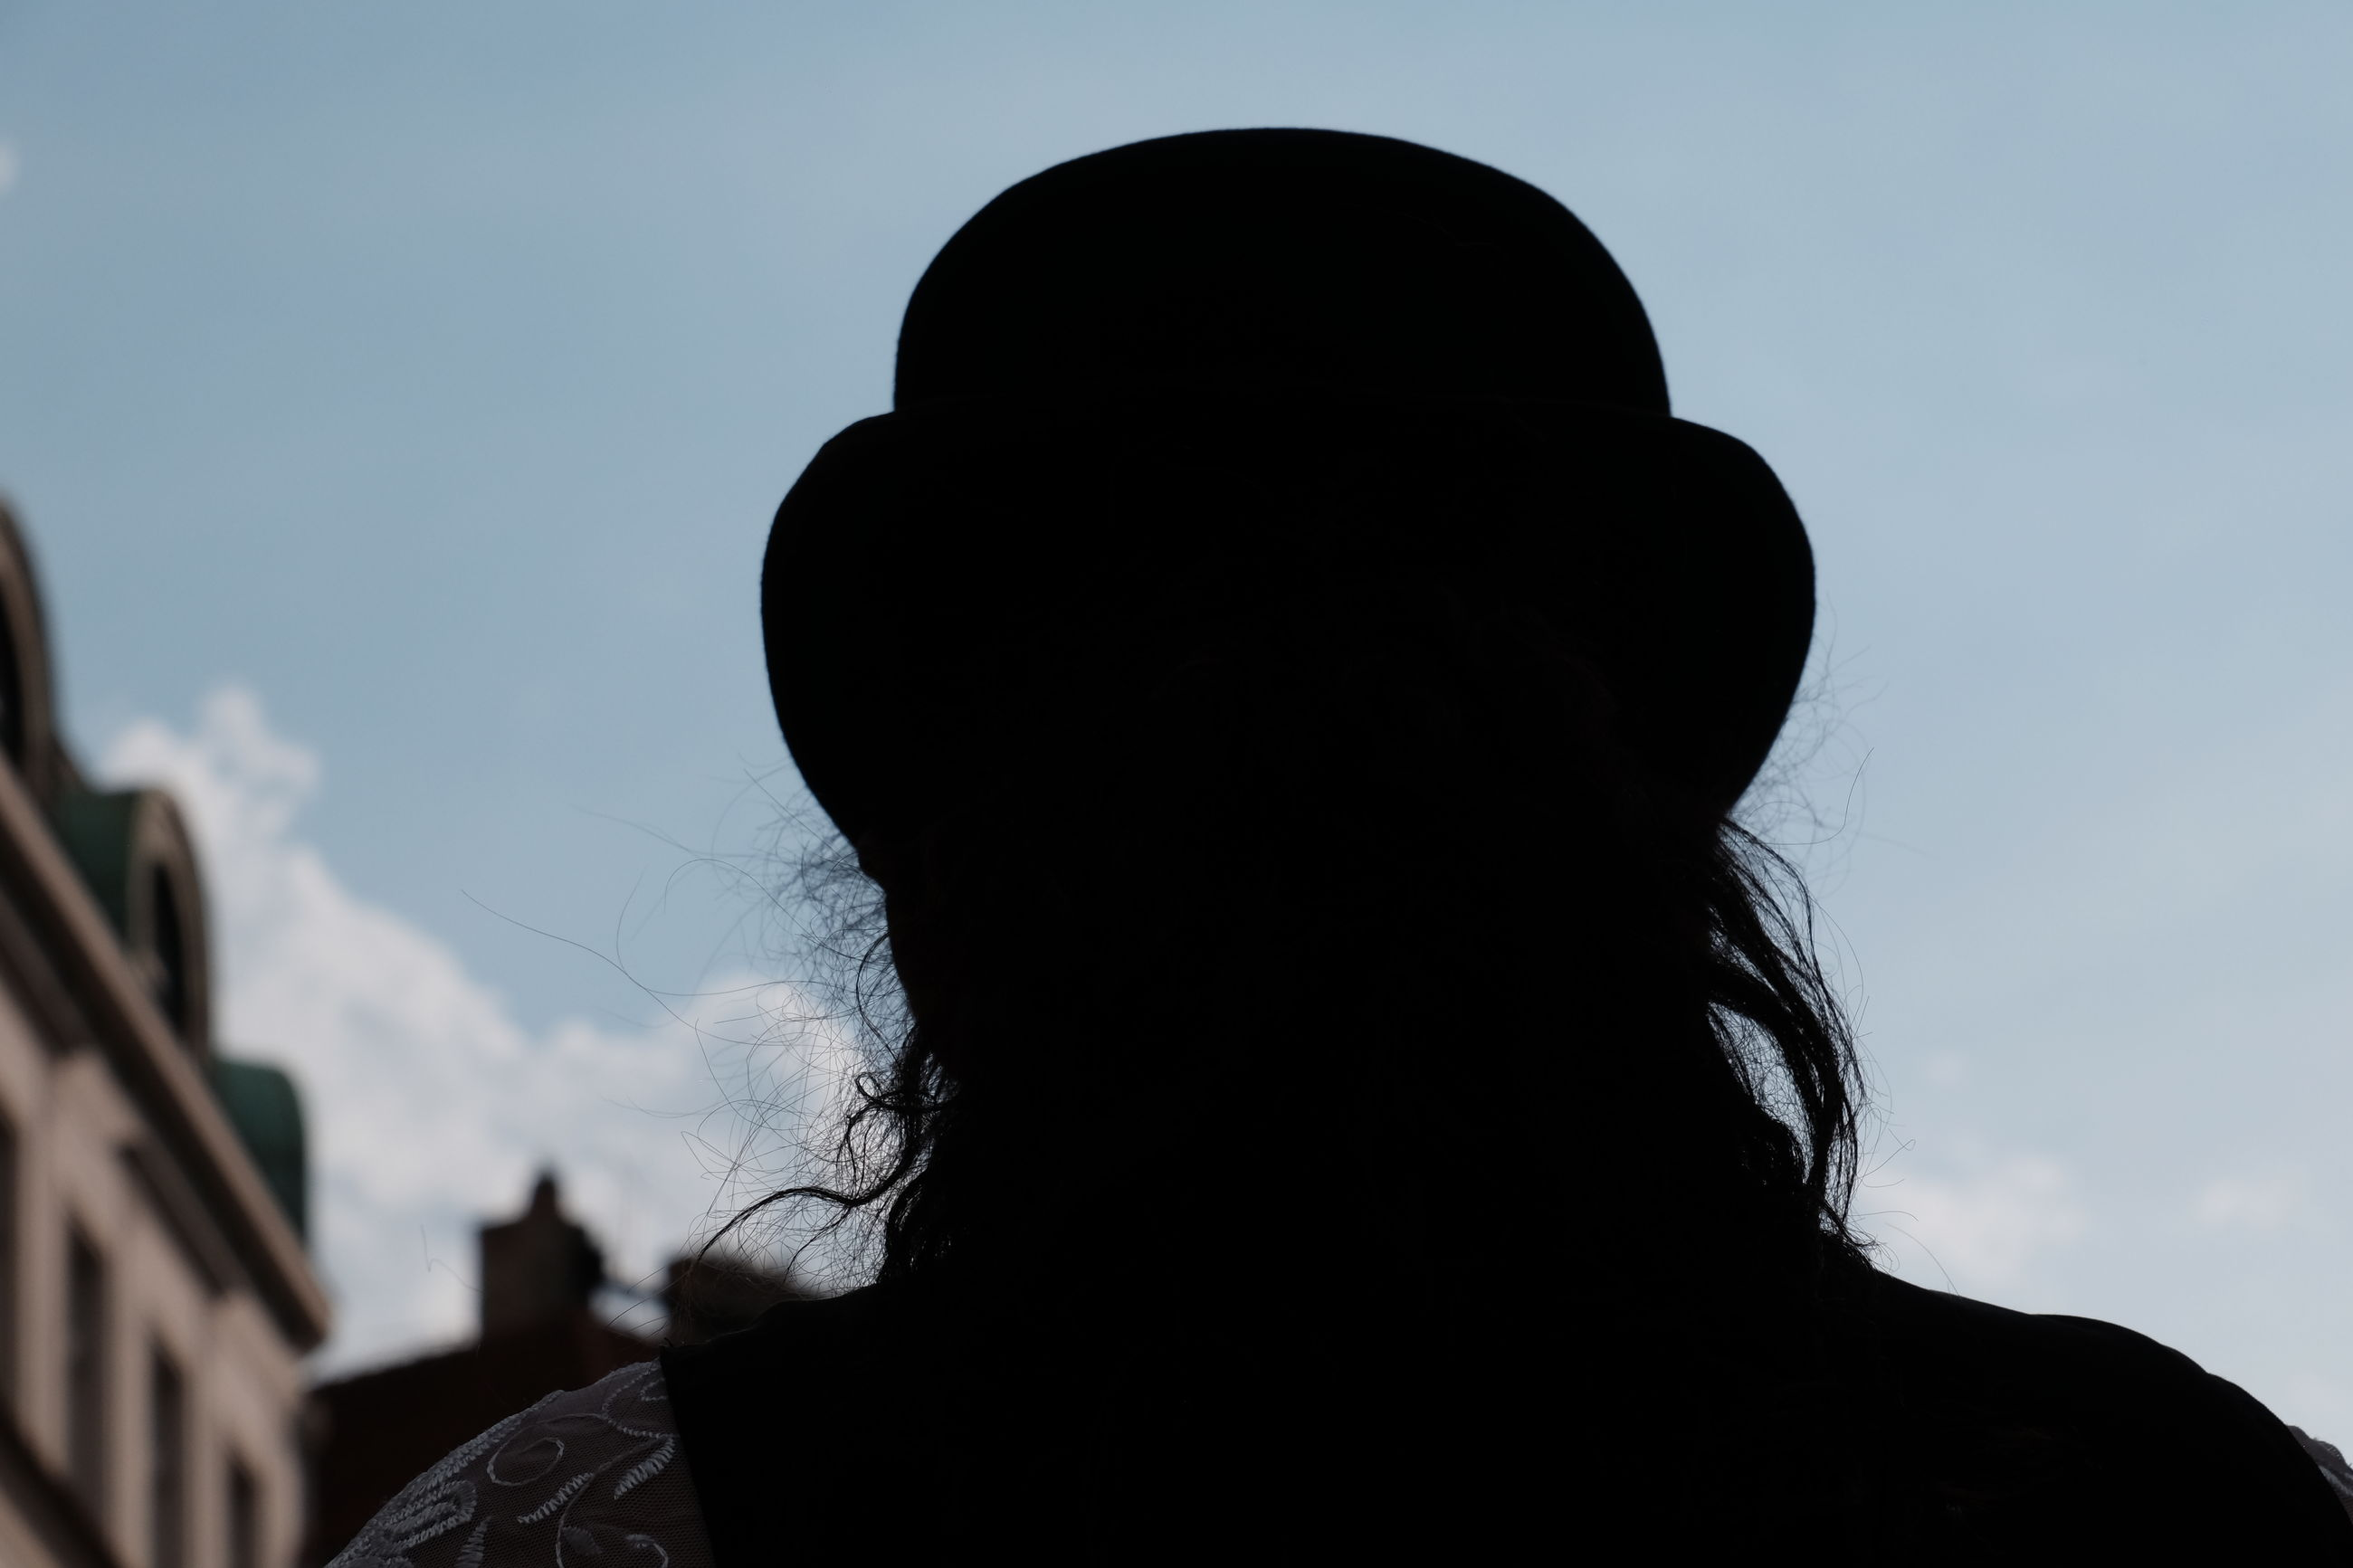 REAR VIEW OF SILHOUETTE PERSON AGAINST SKY